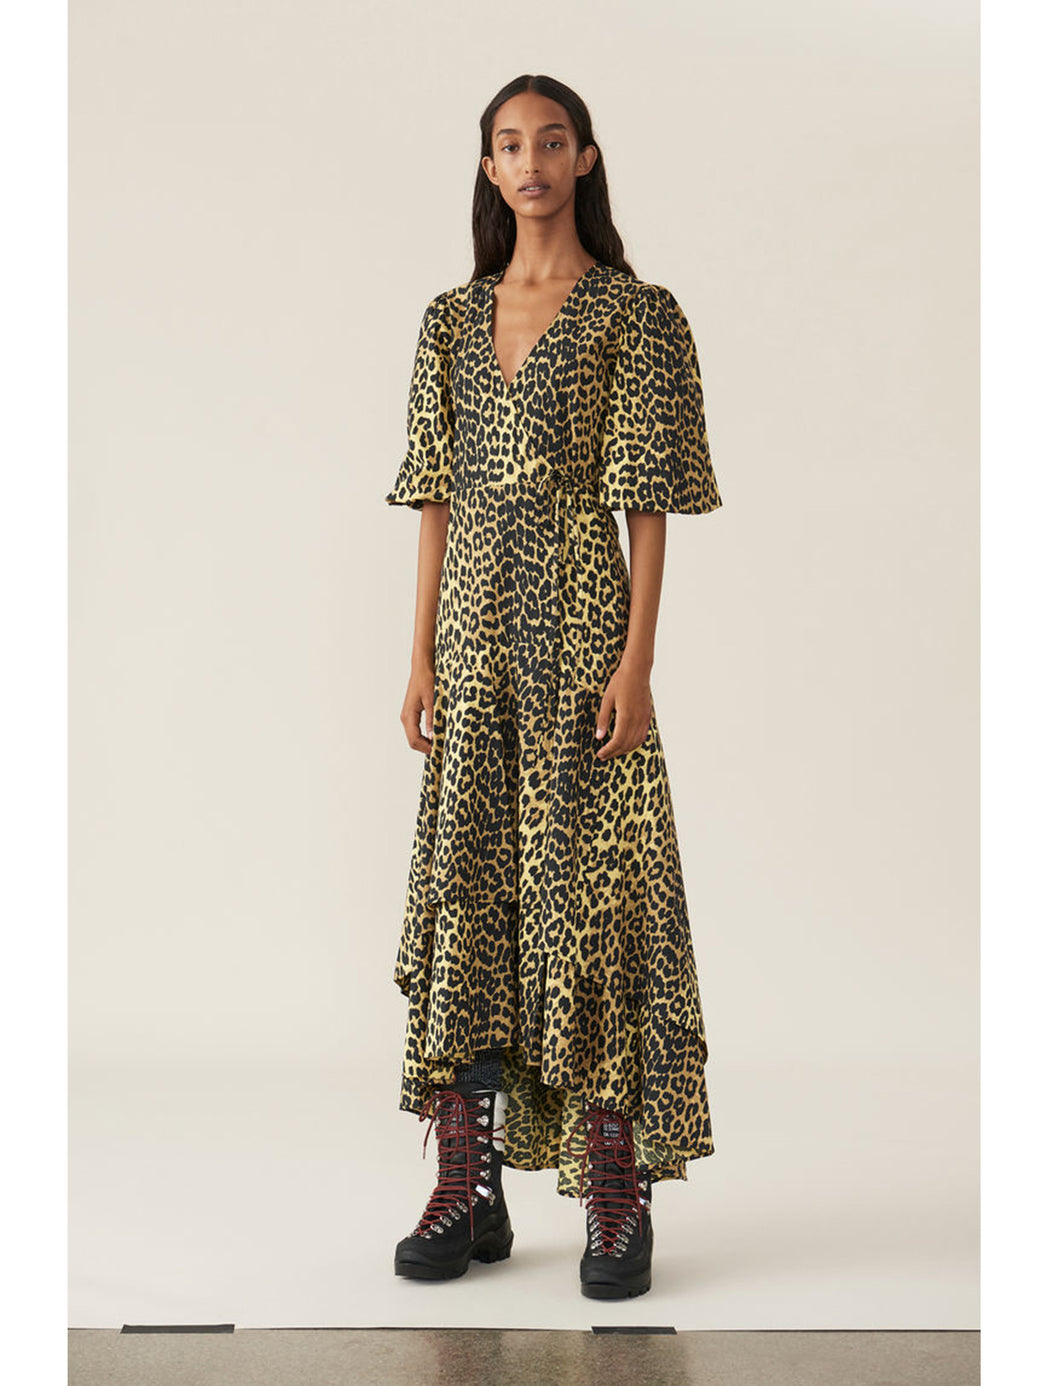 Ganni Printed Cotton Wrap Dress